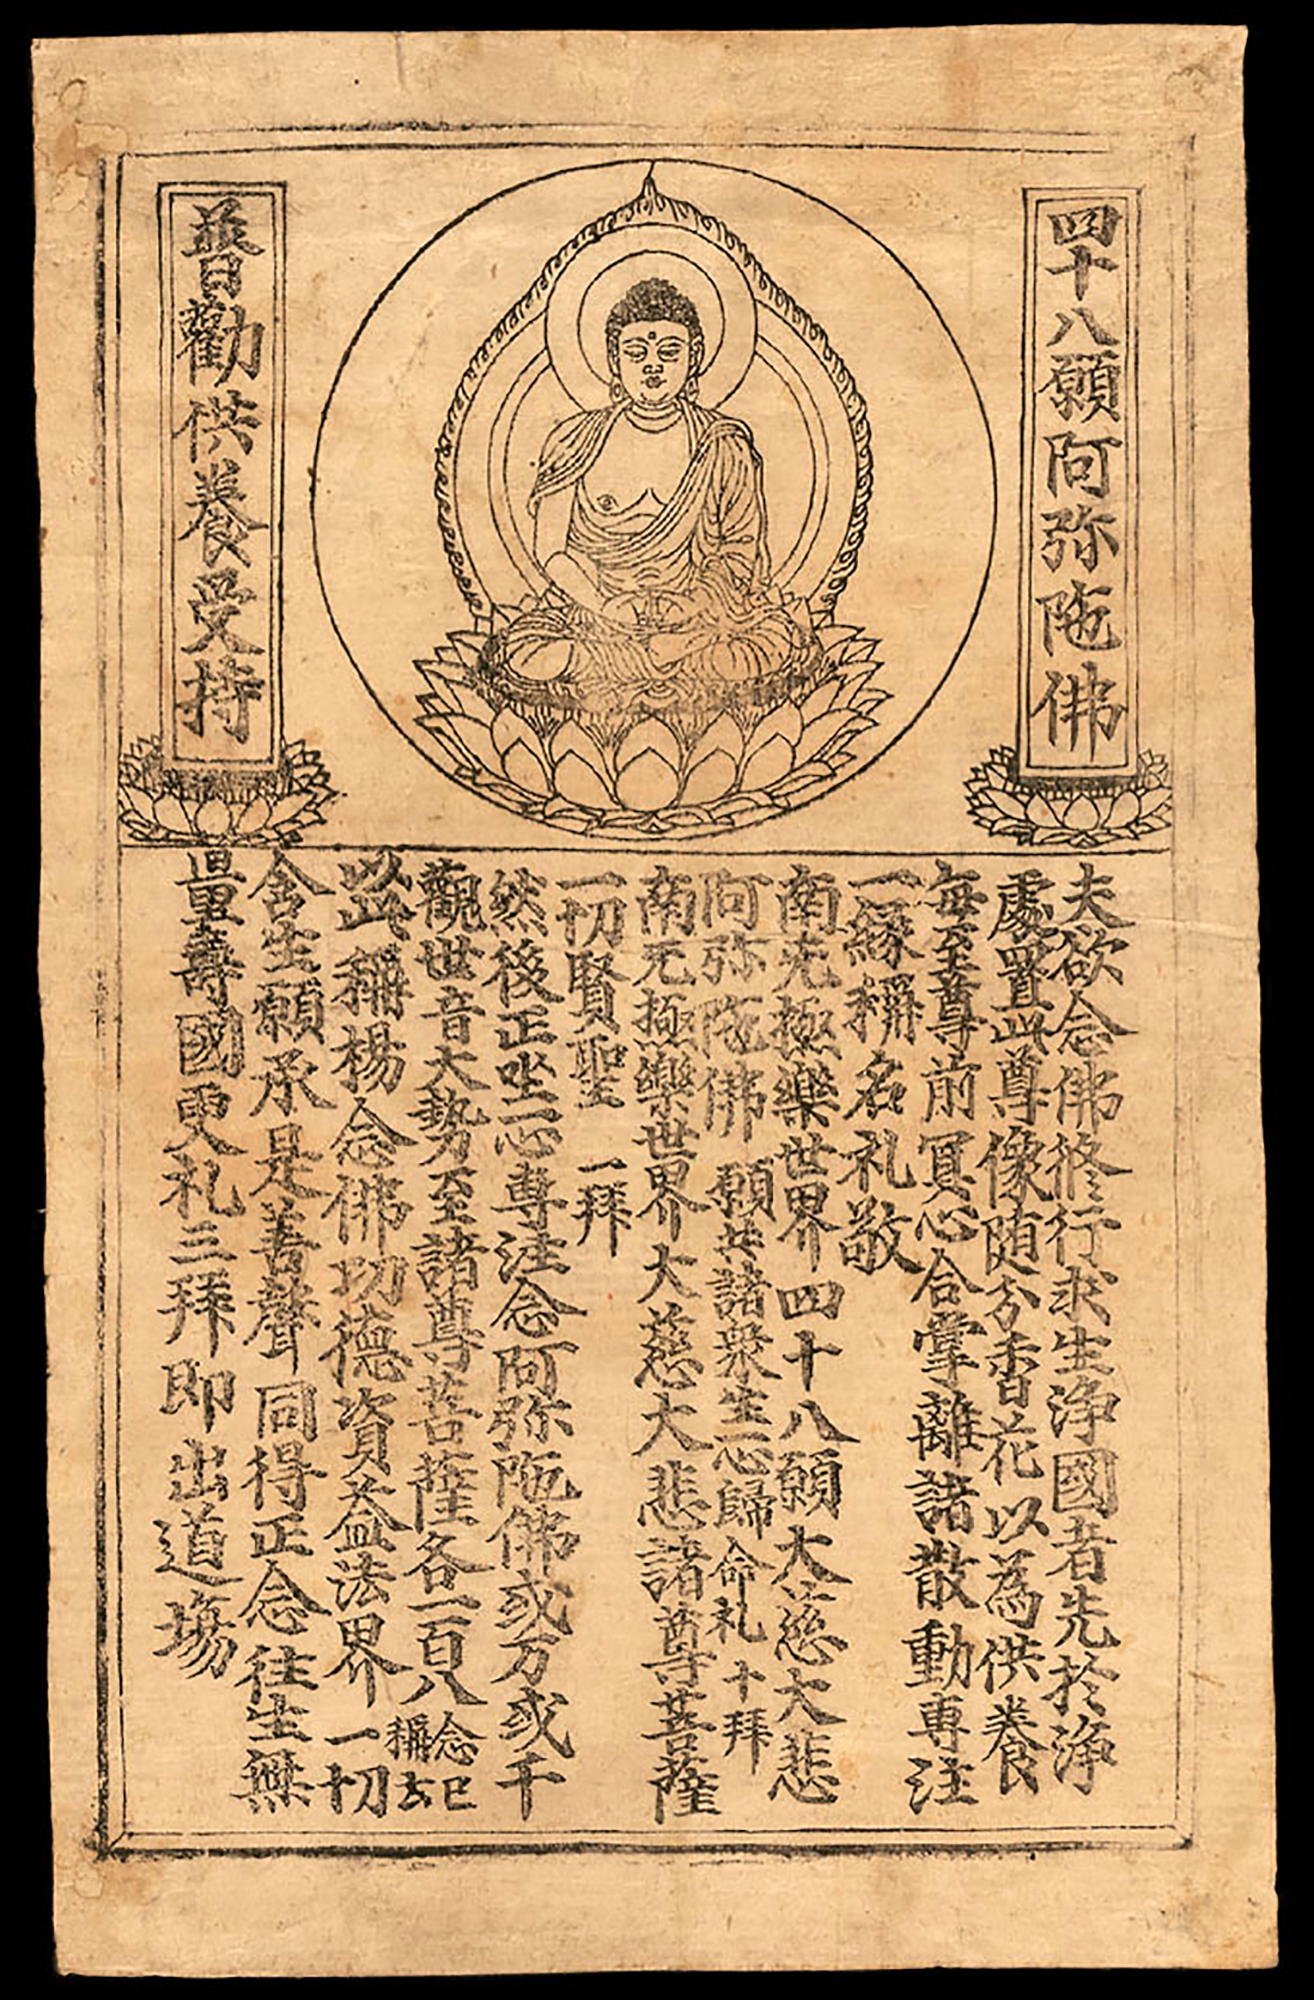 Printed Prayer Sheet with illustration of Amitabha Buddha flanked by two pillars of text.